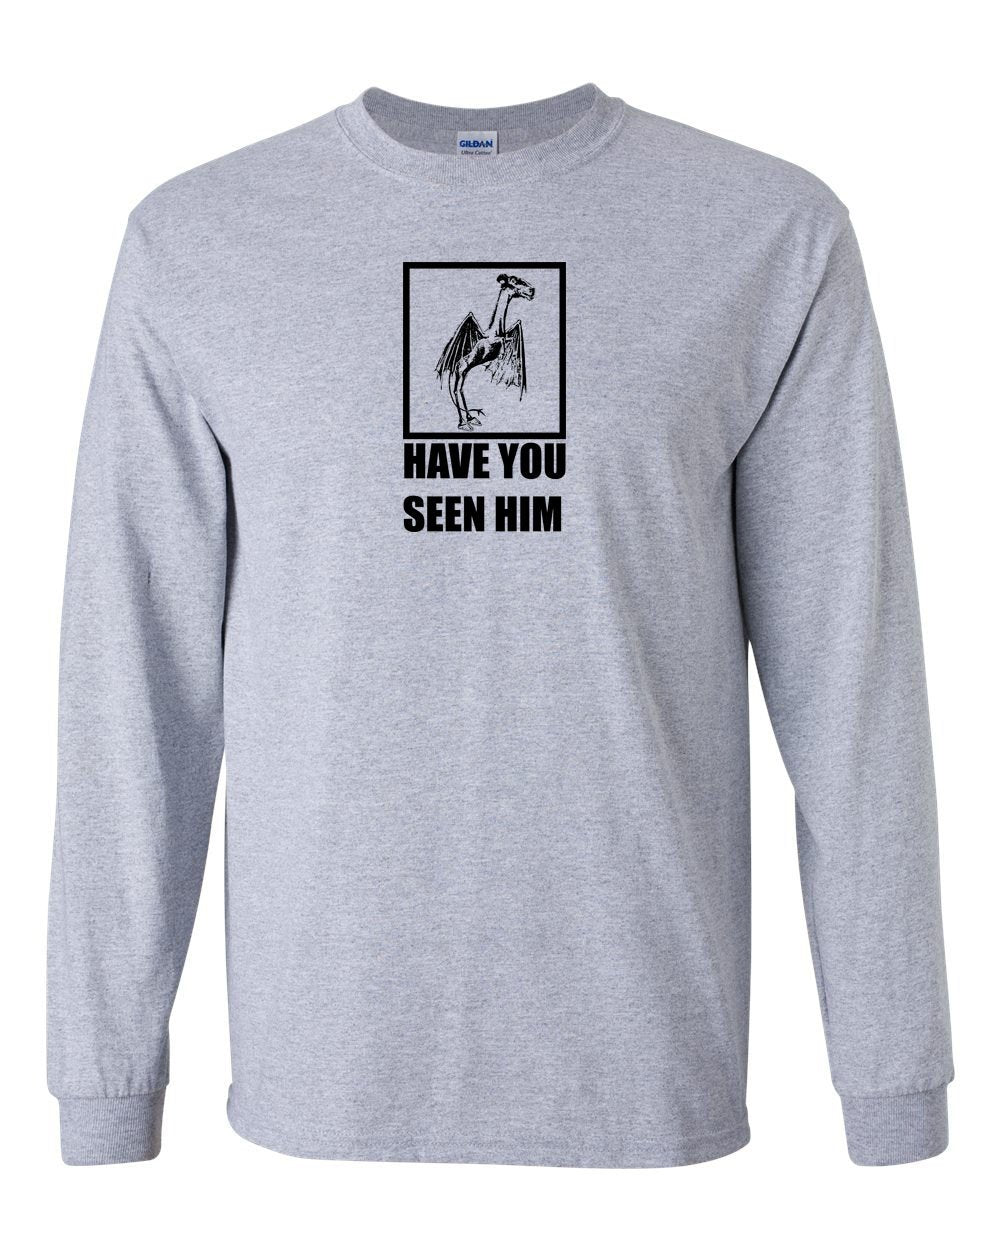 Have You Seen Him? MENS Long Sleeve Heavy Cotton T-Shirt